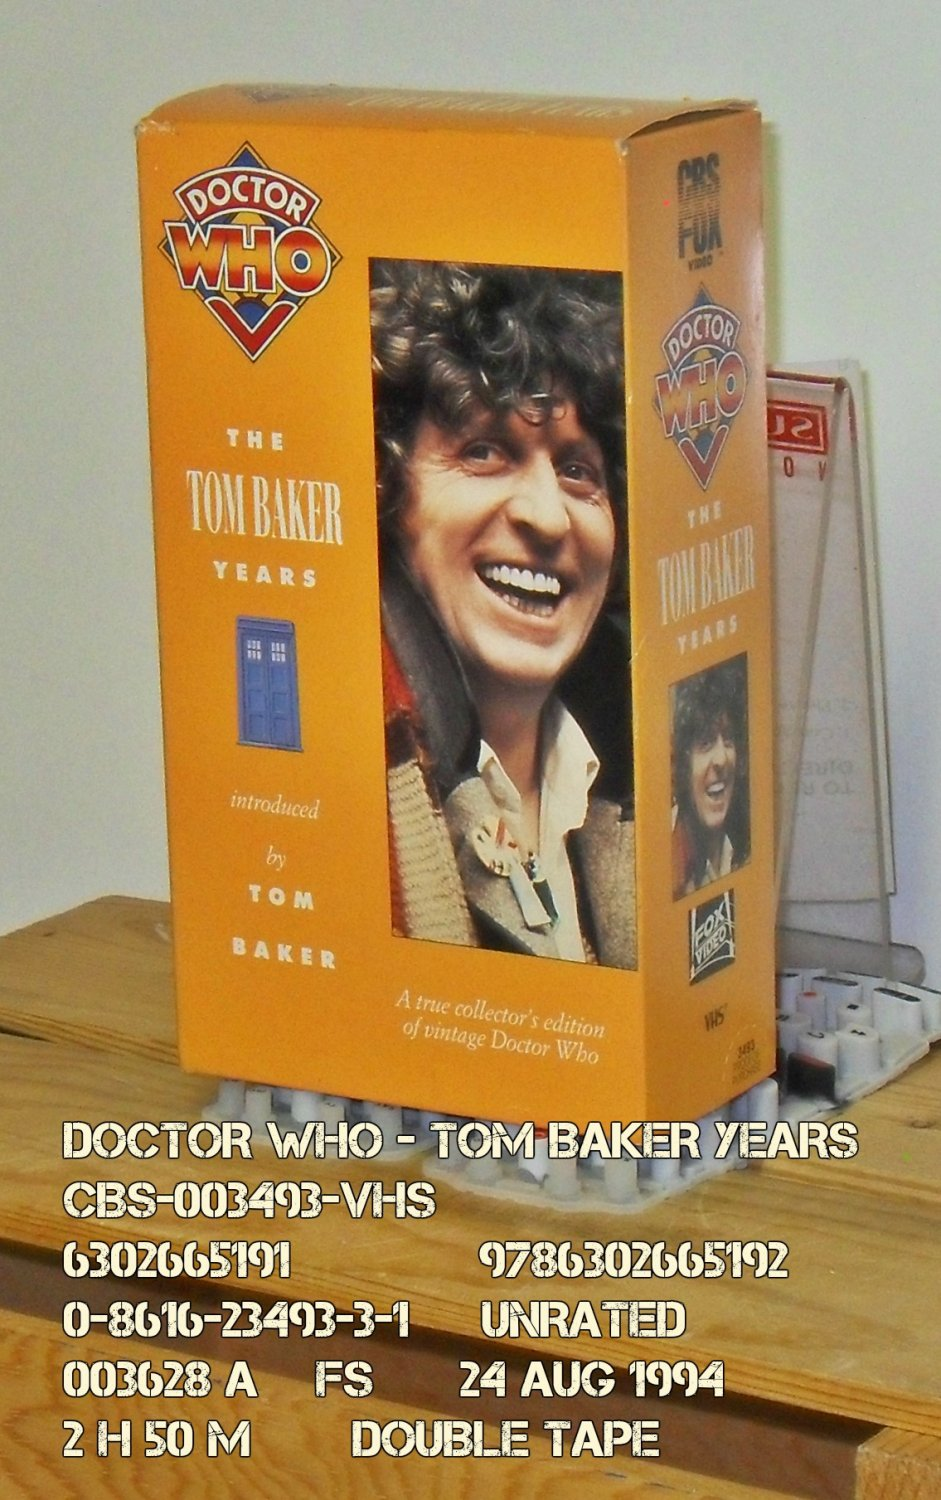 VHS - DOCTOR WHO - TOM BAKER YEARS